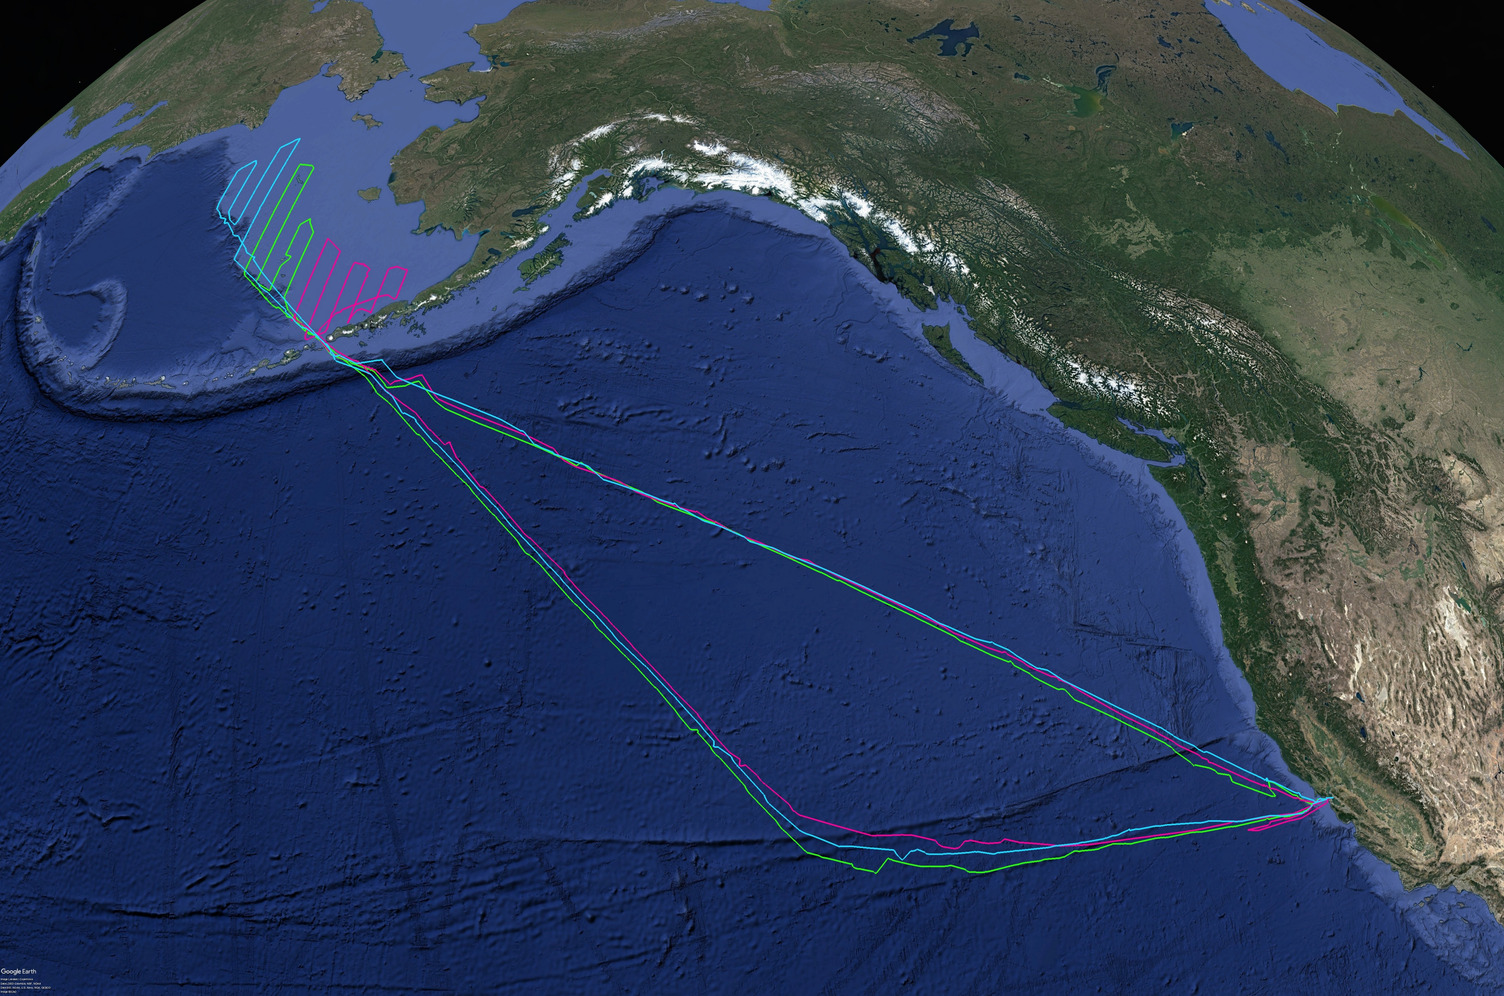 Map showing the Bering Sea survey area and the Gulf of Alaska and north Pacific Saildrone sail path.